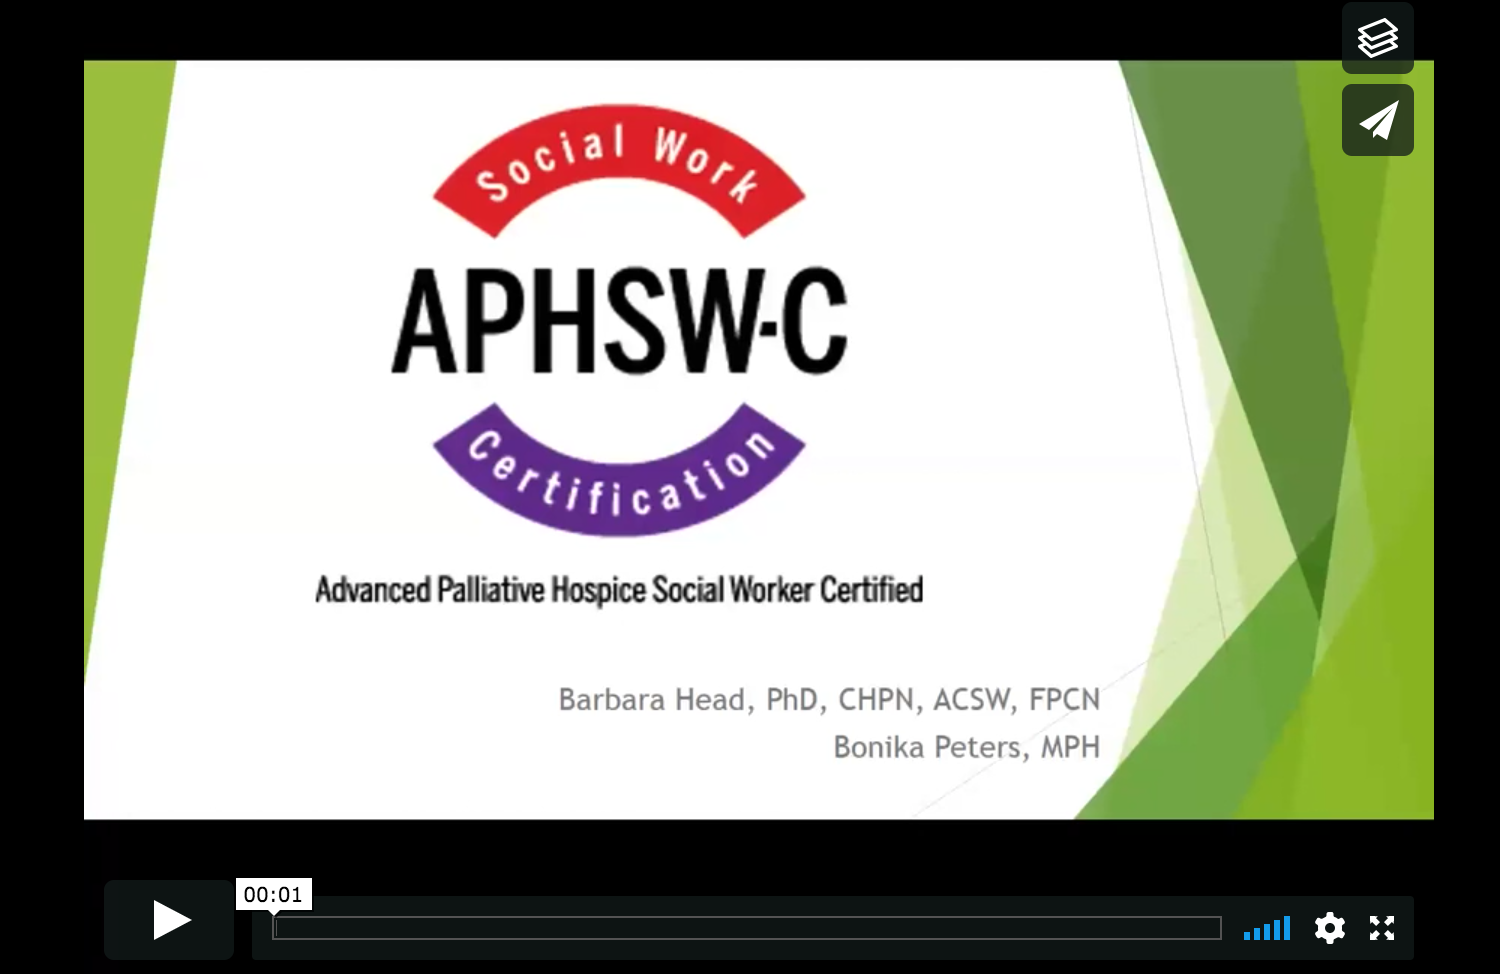 APHSW-C Certification